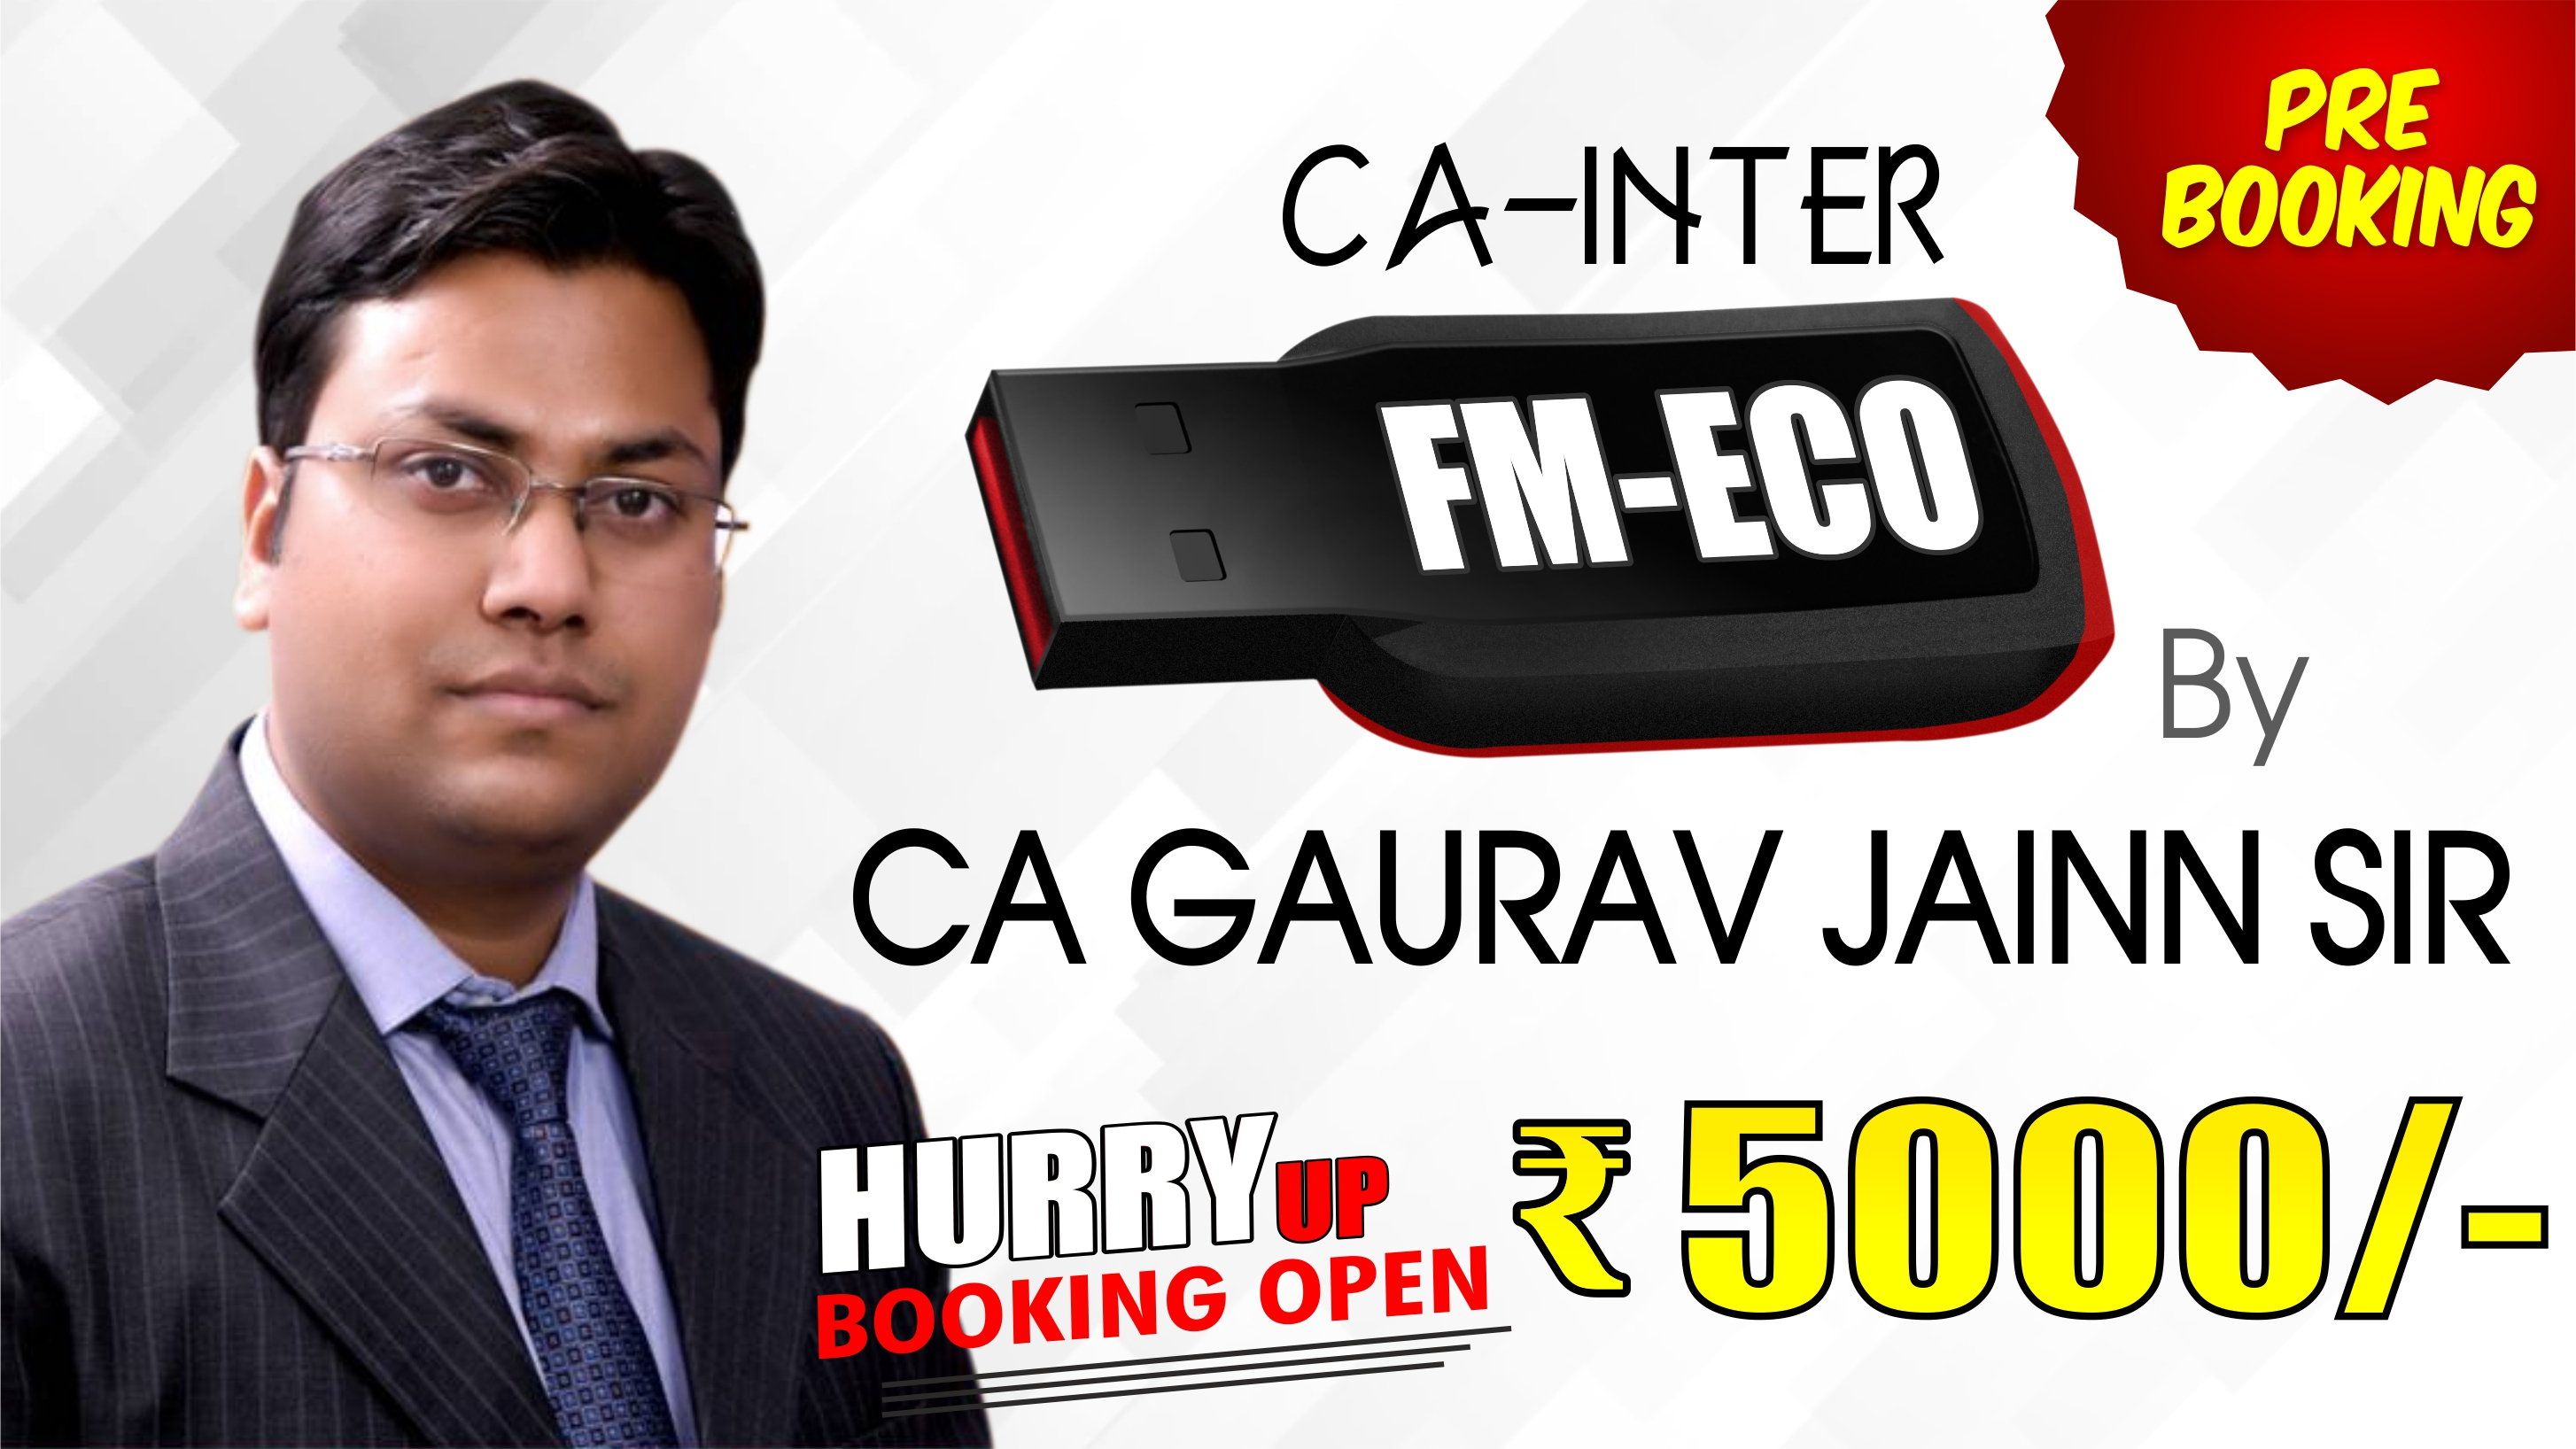 (PRE BOOKING) CA Inter FM-ECO Pendrive Classes by CA Gaurav Jainn Sir For May 20 & Onwards - Full HD Video Lecture + HQ Sound